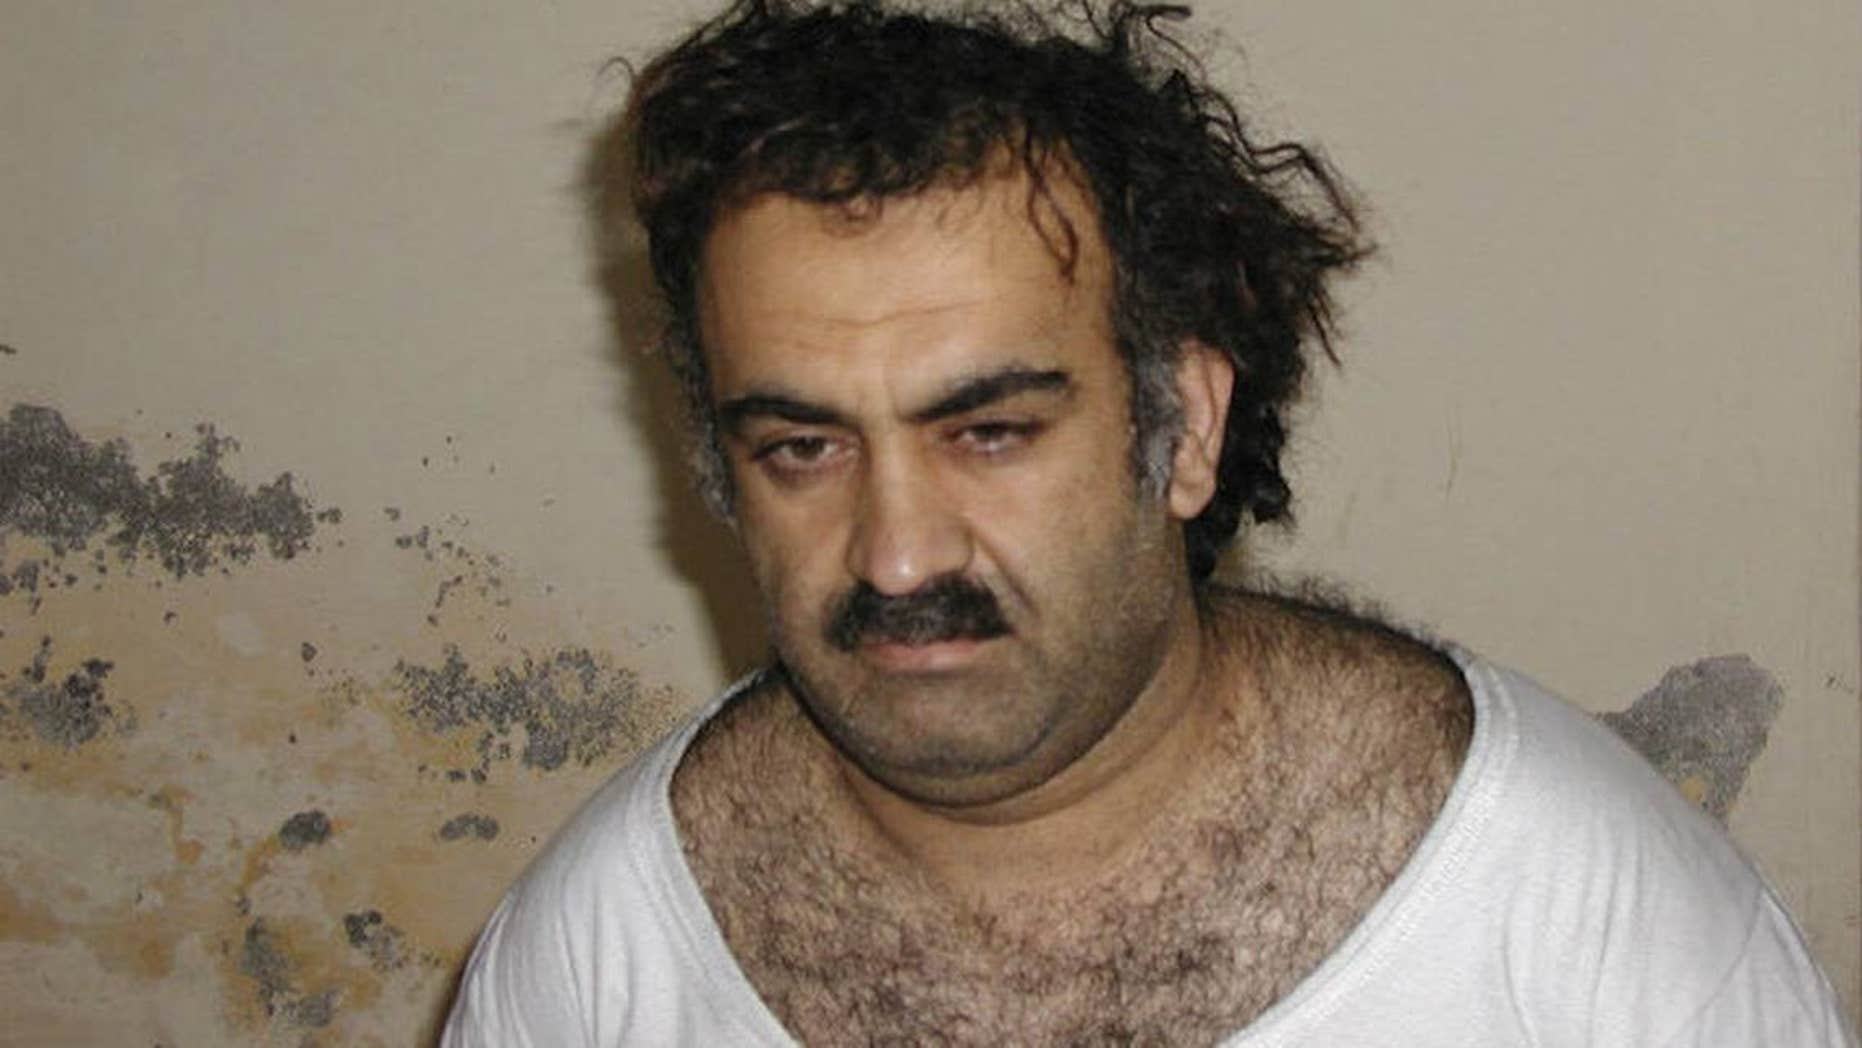 Khalid Sheik Mohammed, alleged mastermind behind the 9/11 attacks, was captured in March 2003 in Pakistan.